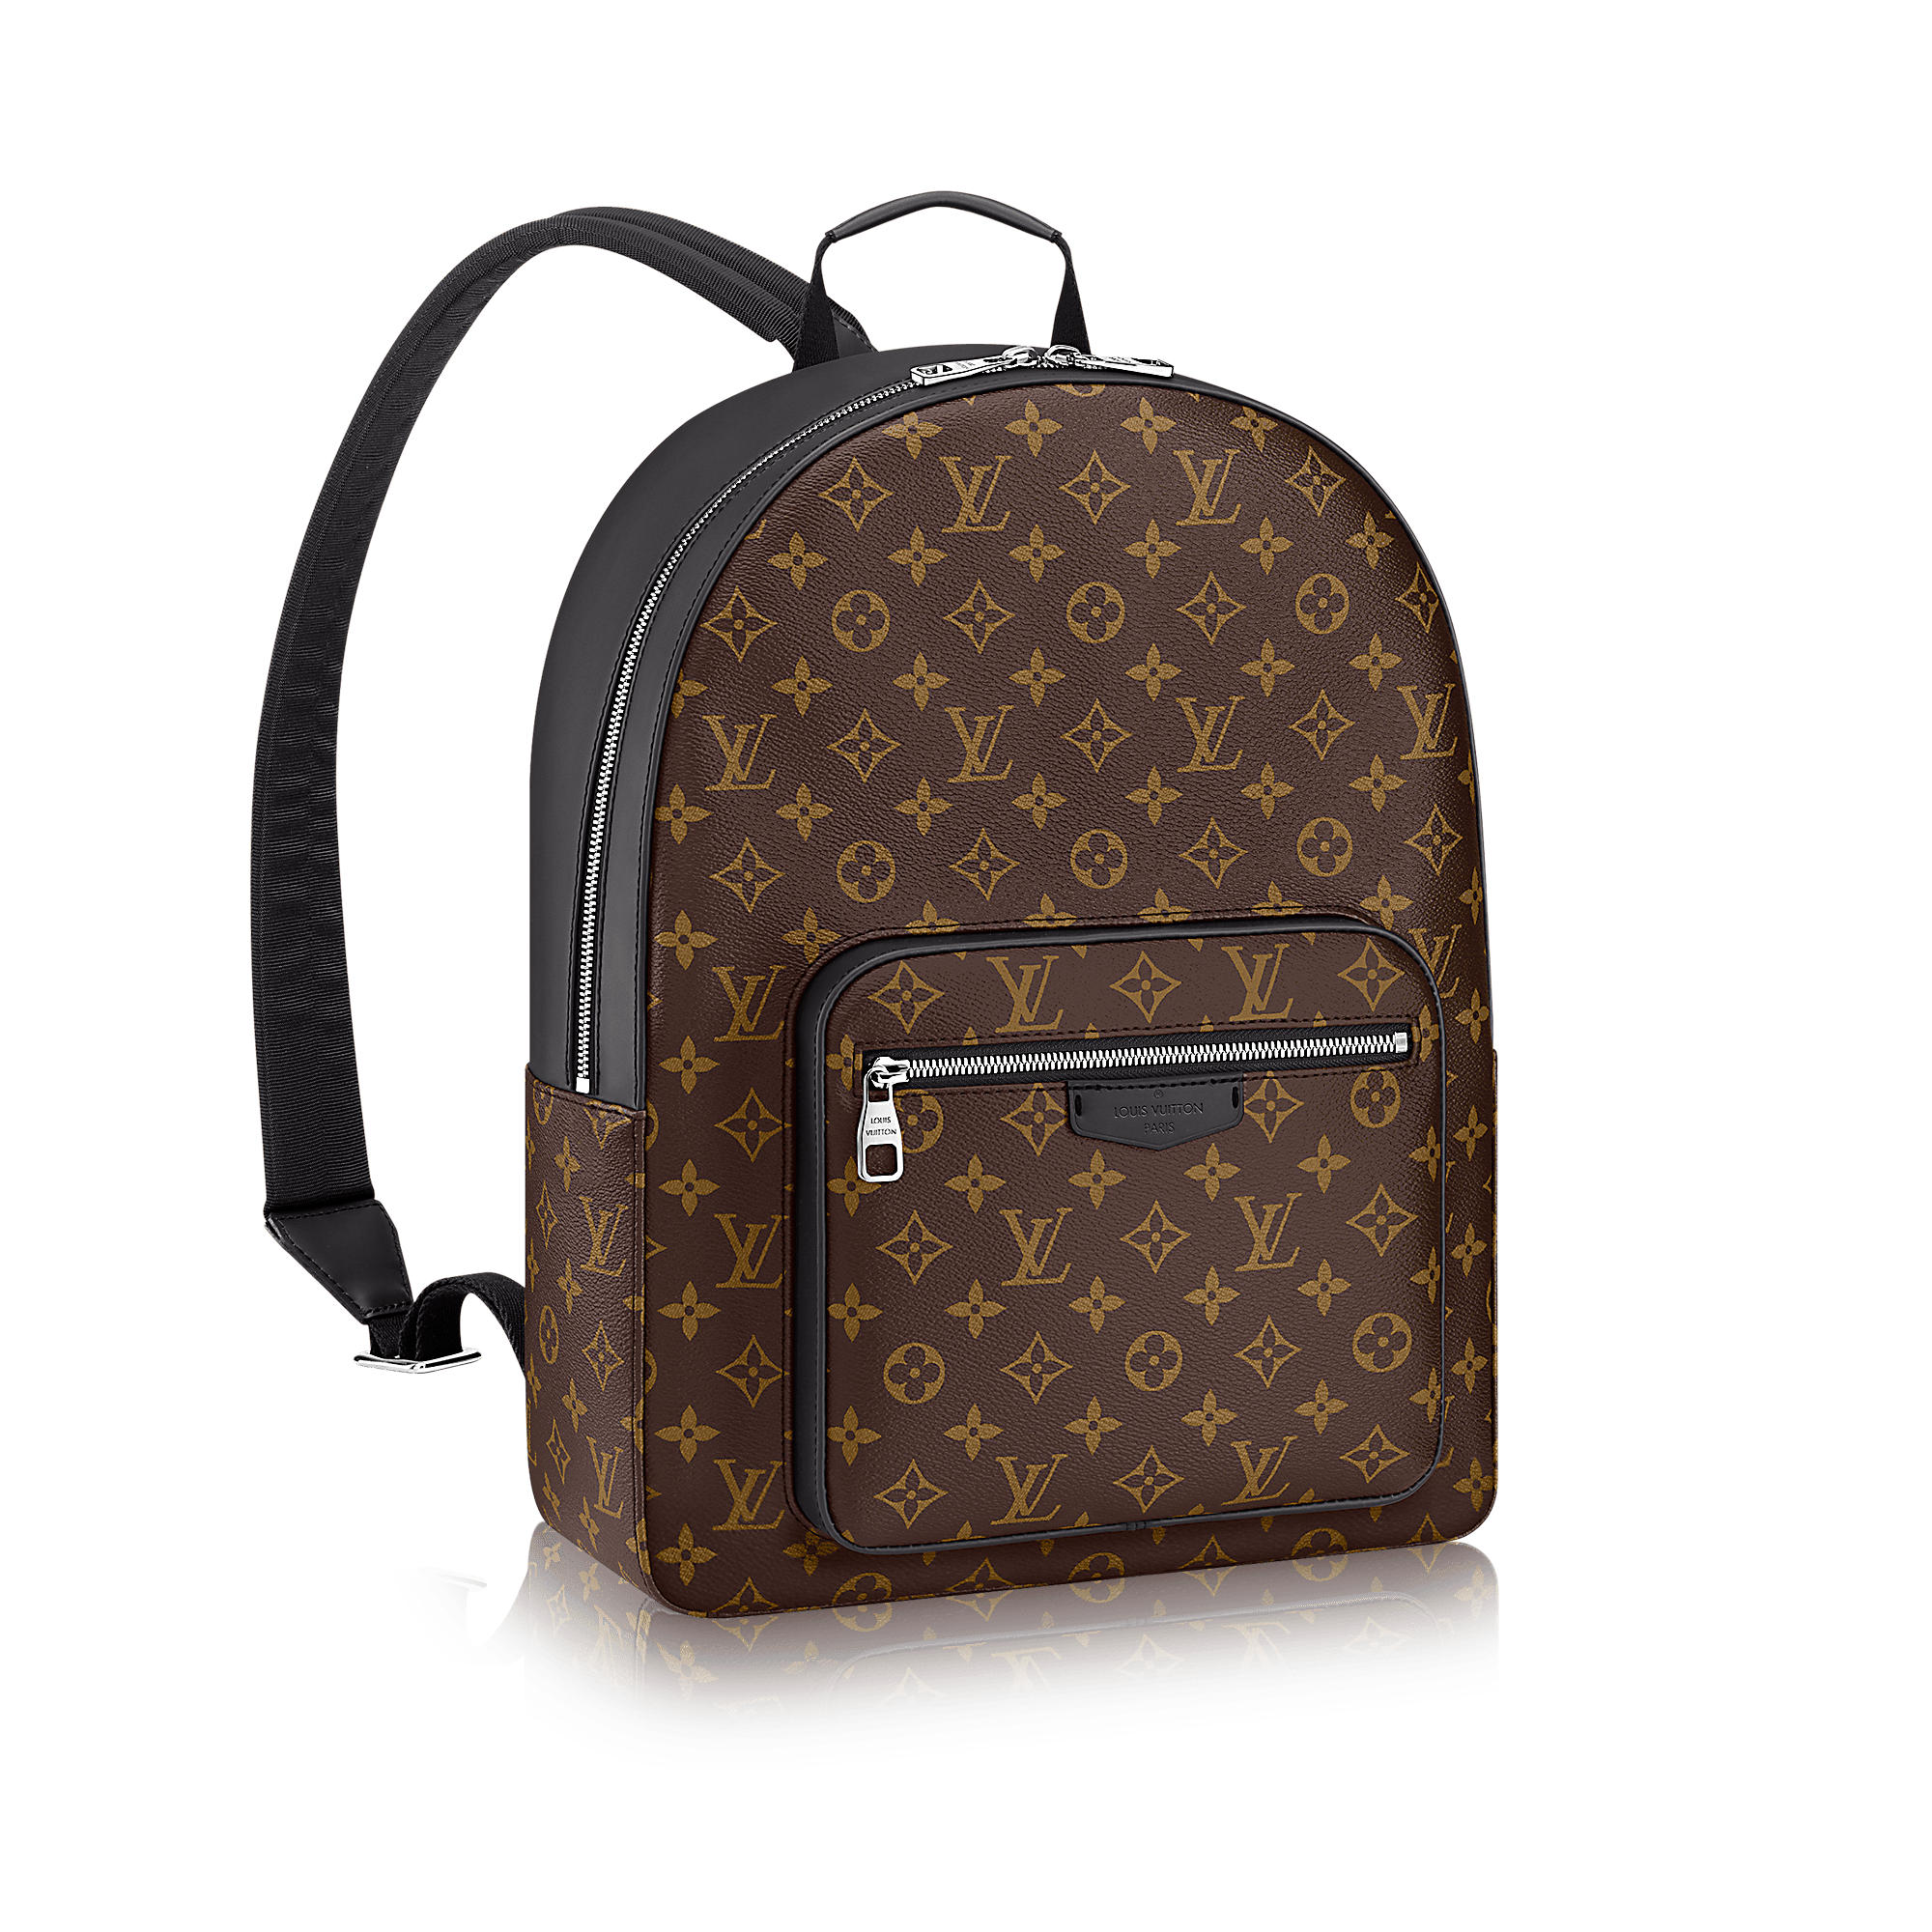 Sacs Louis Vuitton